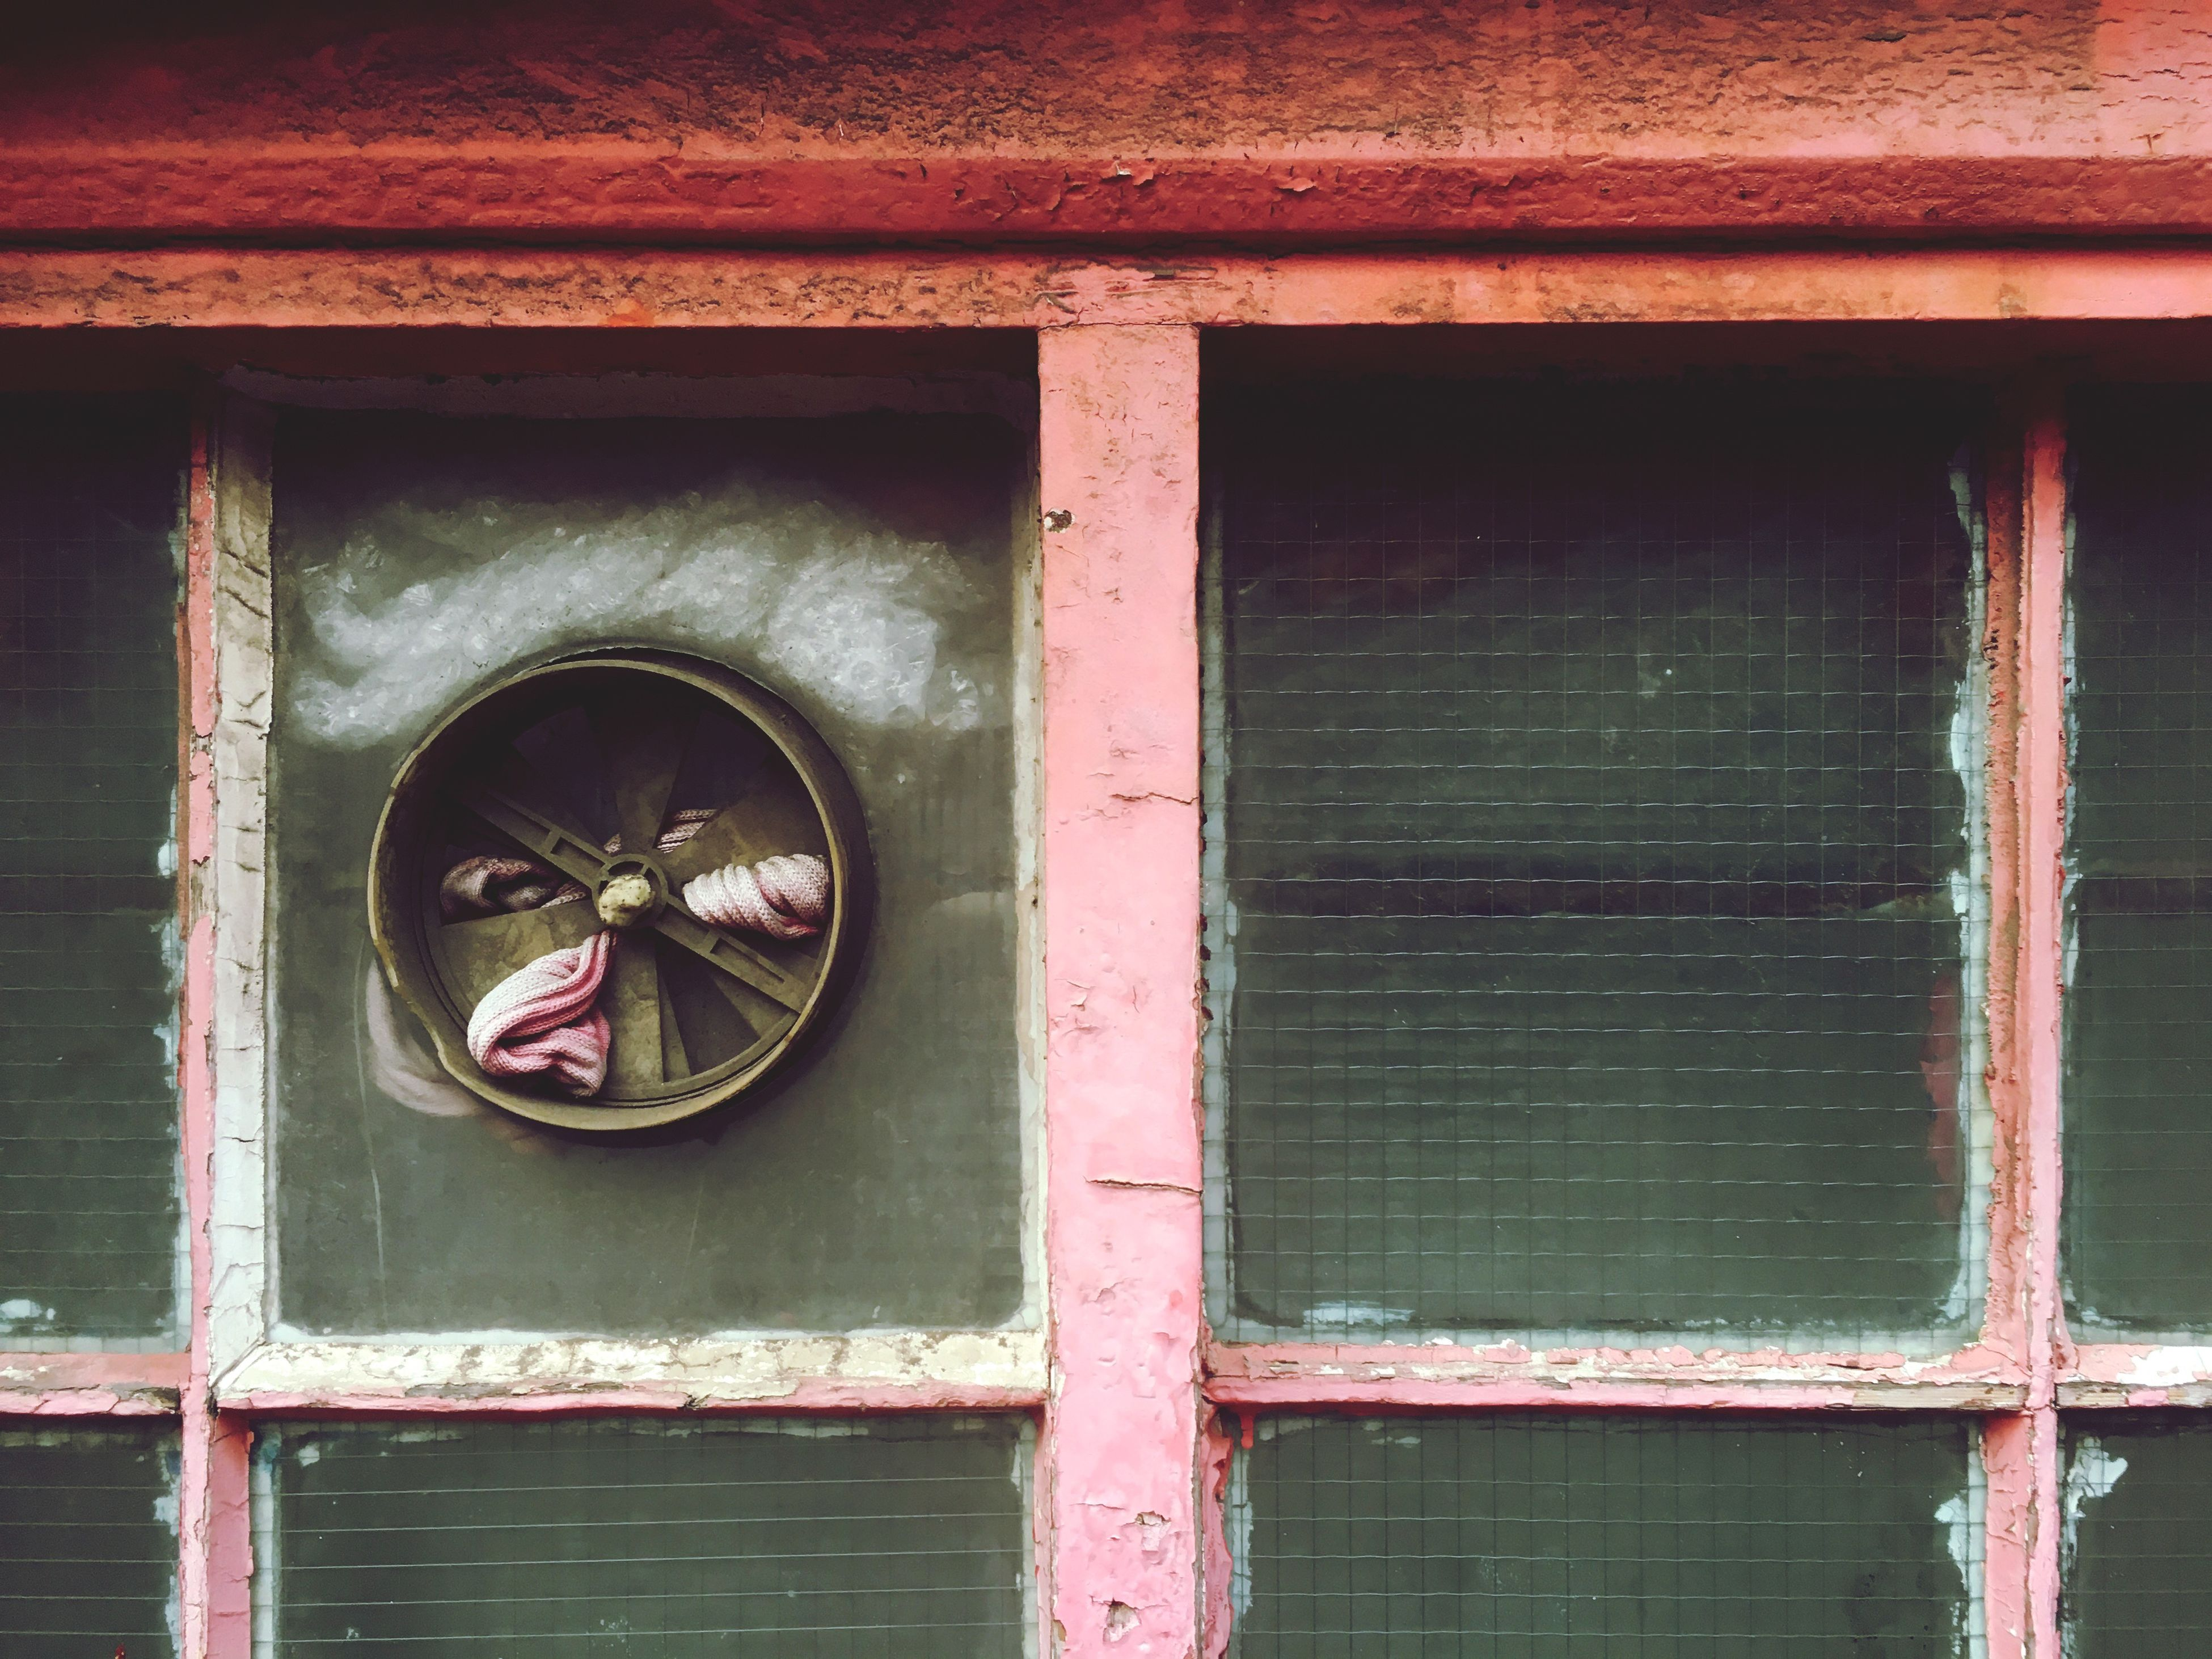 built structure, transportation, old, mode of transport, building exterior, architecture, red, weathered, rusty, outdoors, metal, day, abandoned, wall - building feature, part of, window, wood - material, damaged, no people, wheel